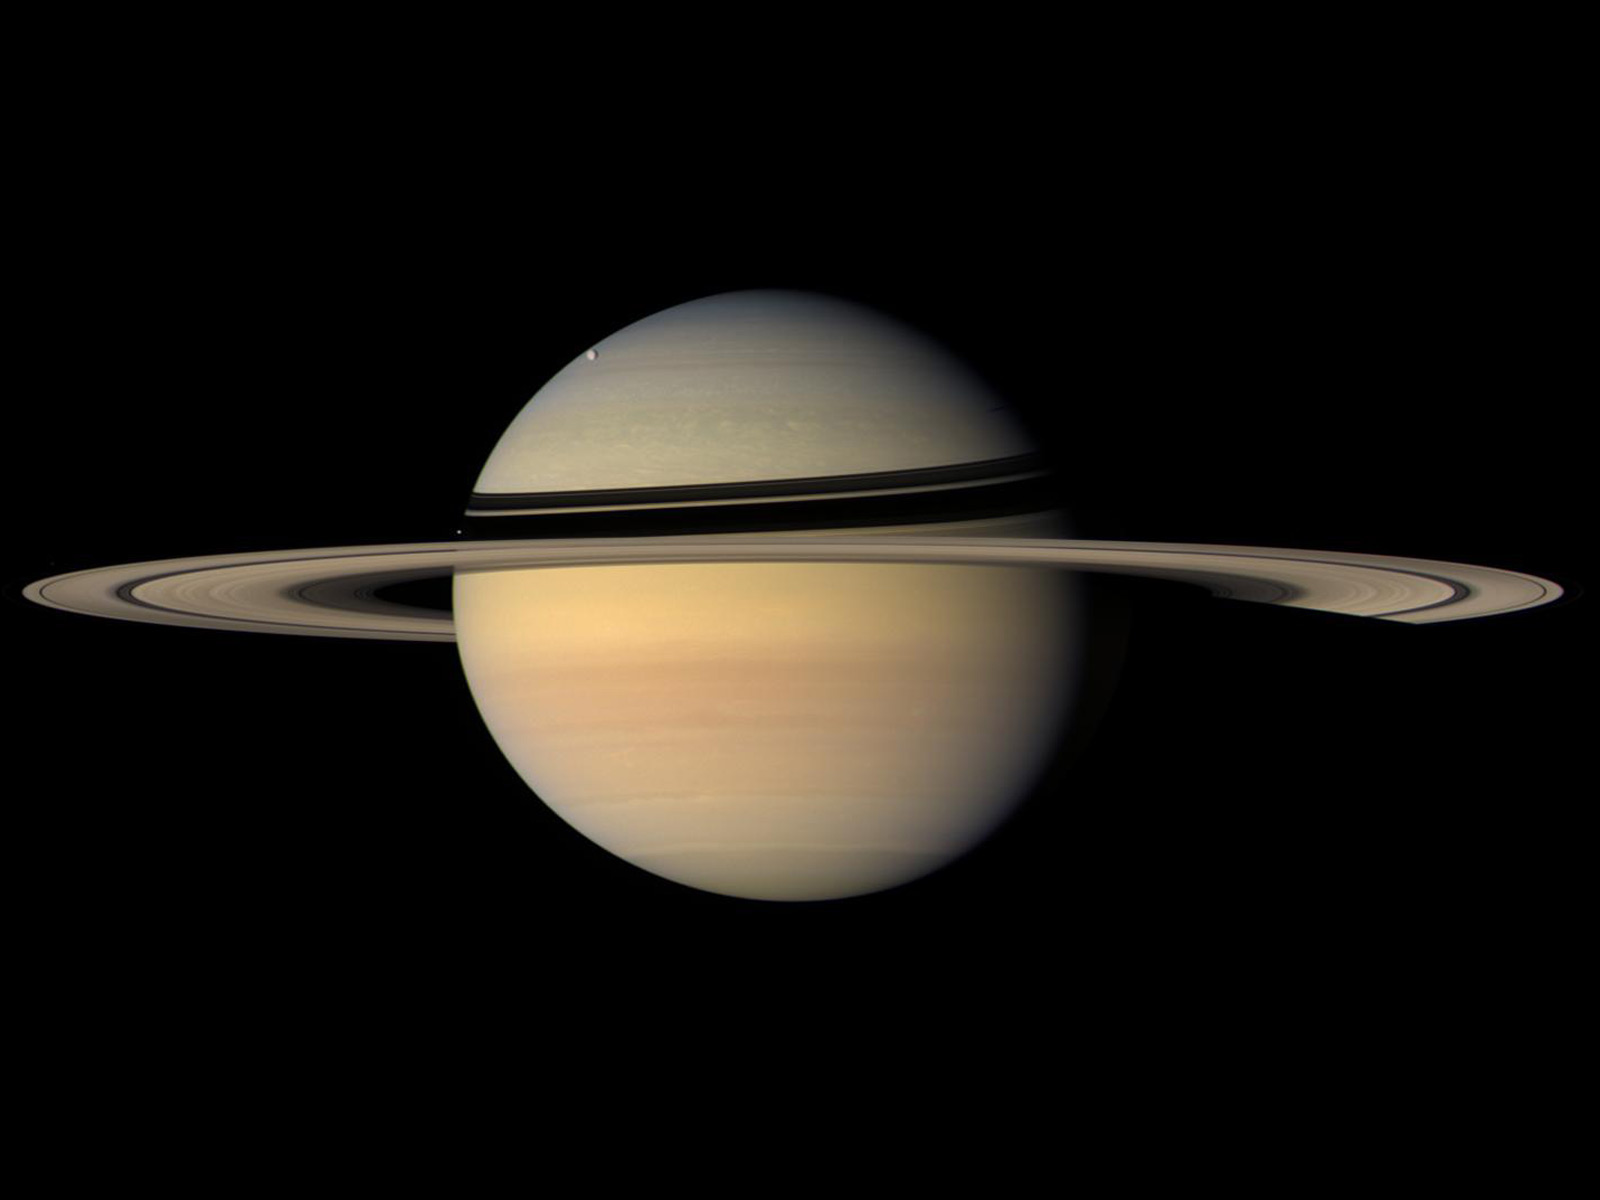 Saturn HQ Wallpapers and Pictures | Astromic's Backyard